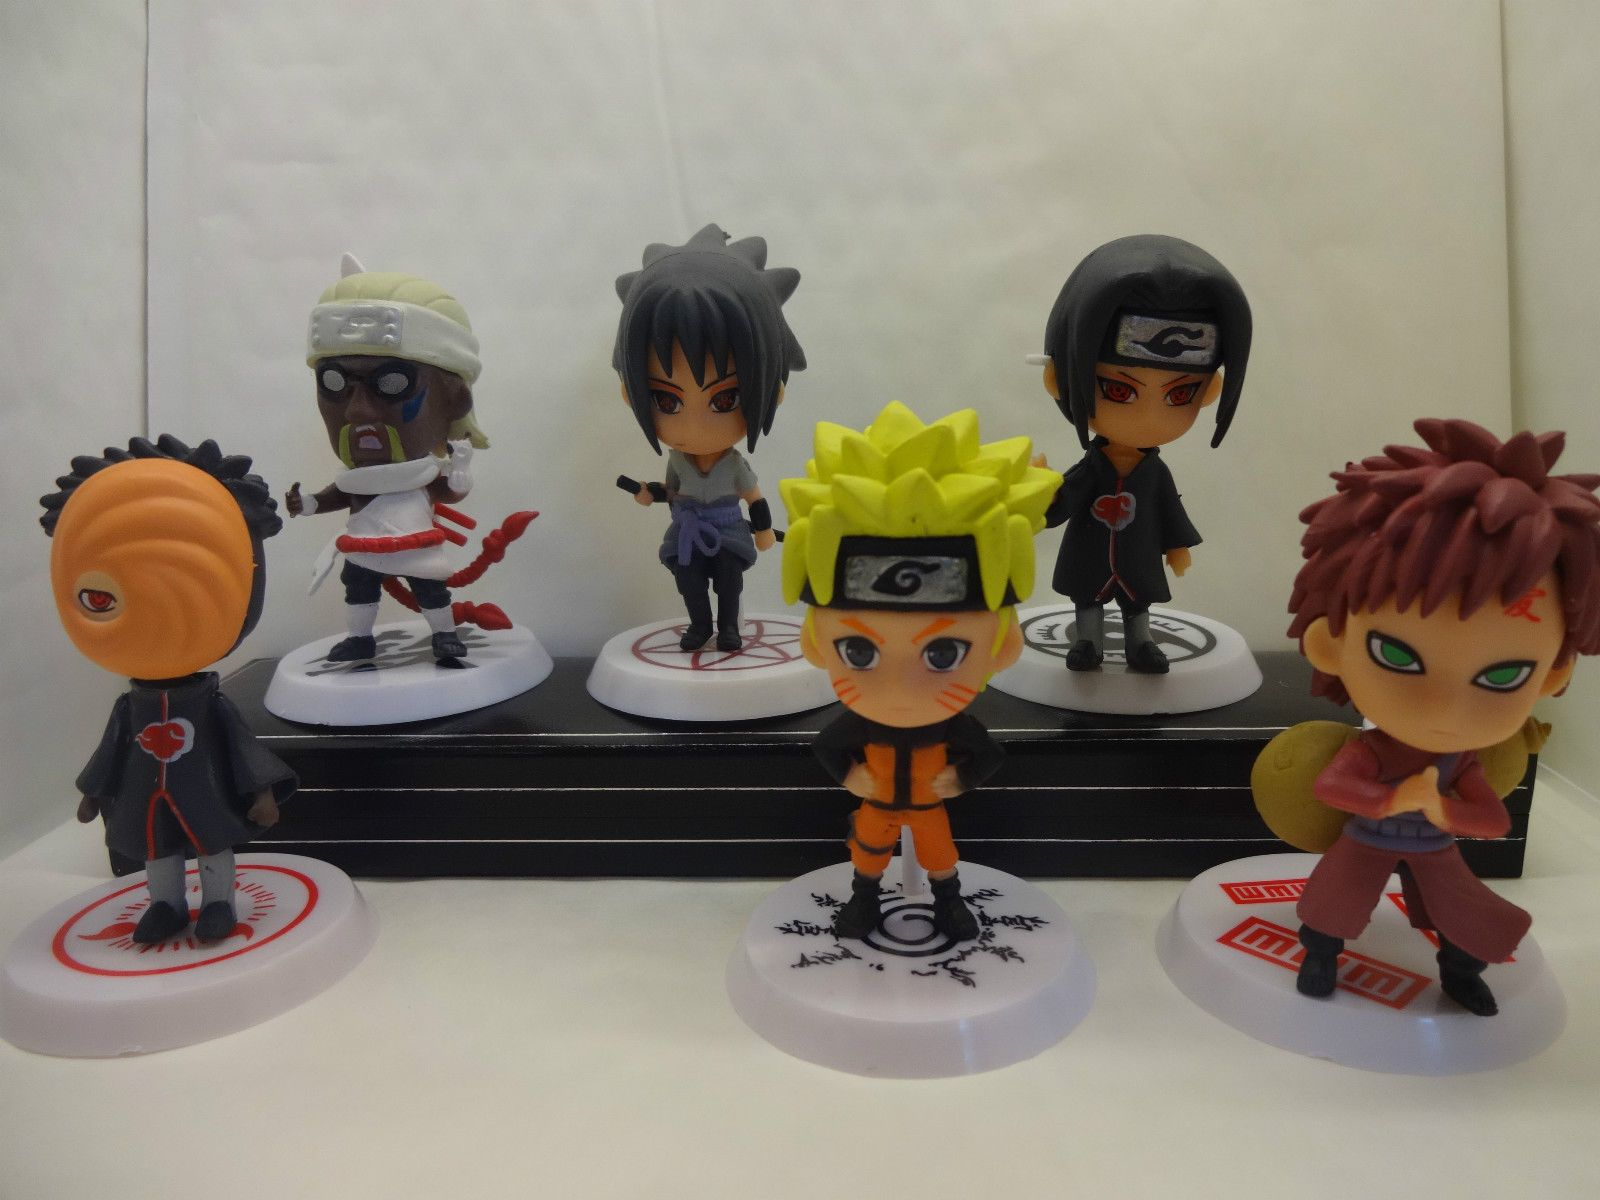 Naruto Anime Cake Topper Figures Set Of 6 Brand Anime